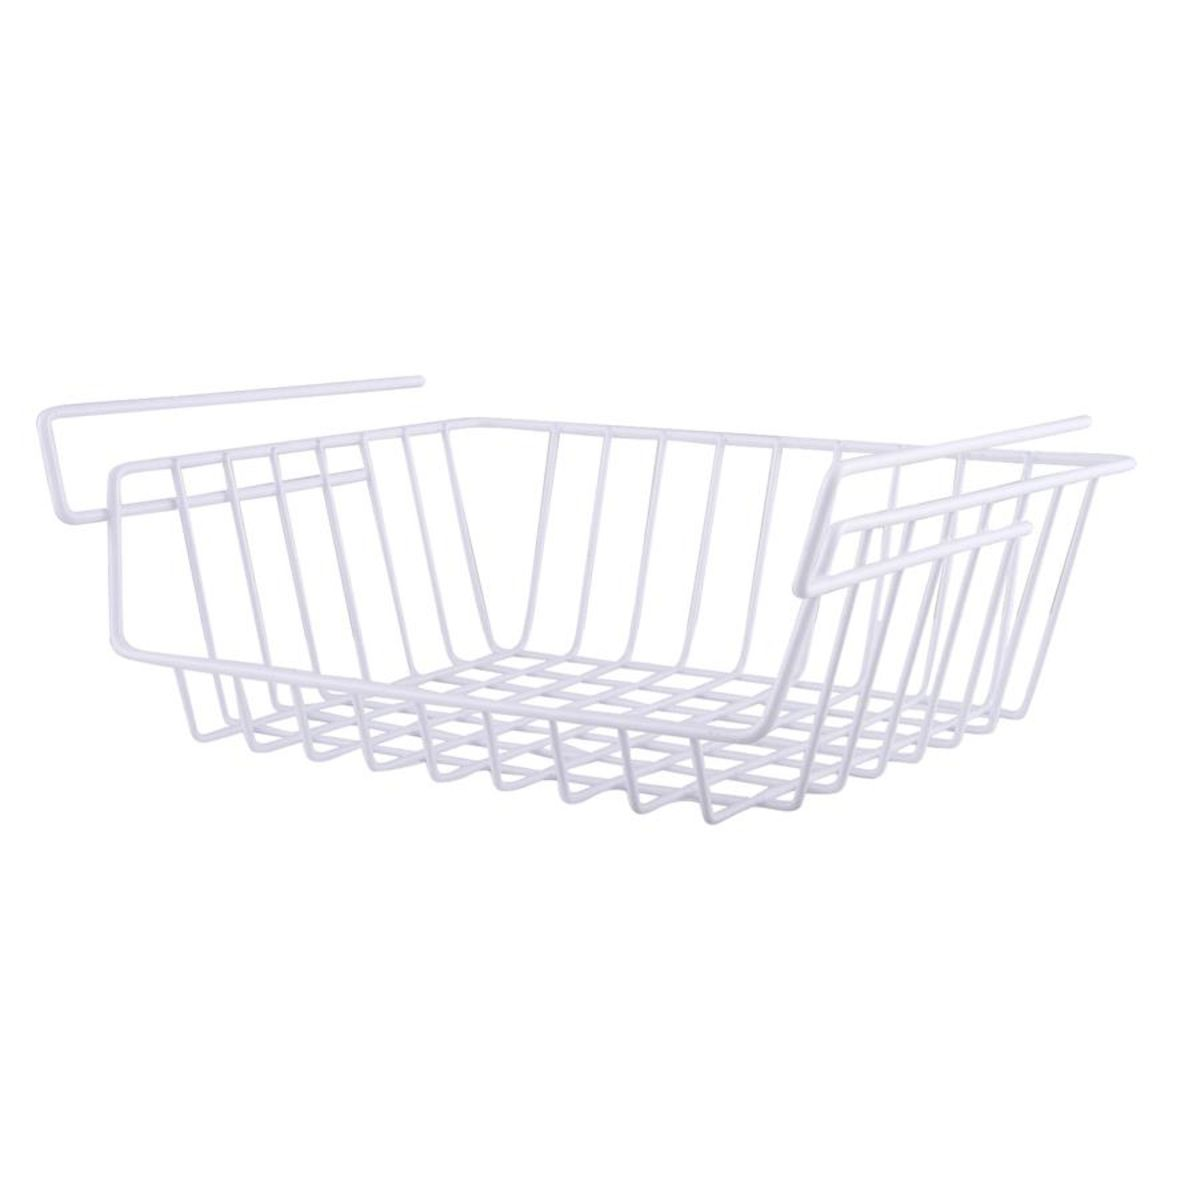 Wire Under Shelf Basket | Shelves, Storage organization and Storage